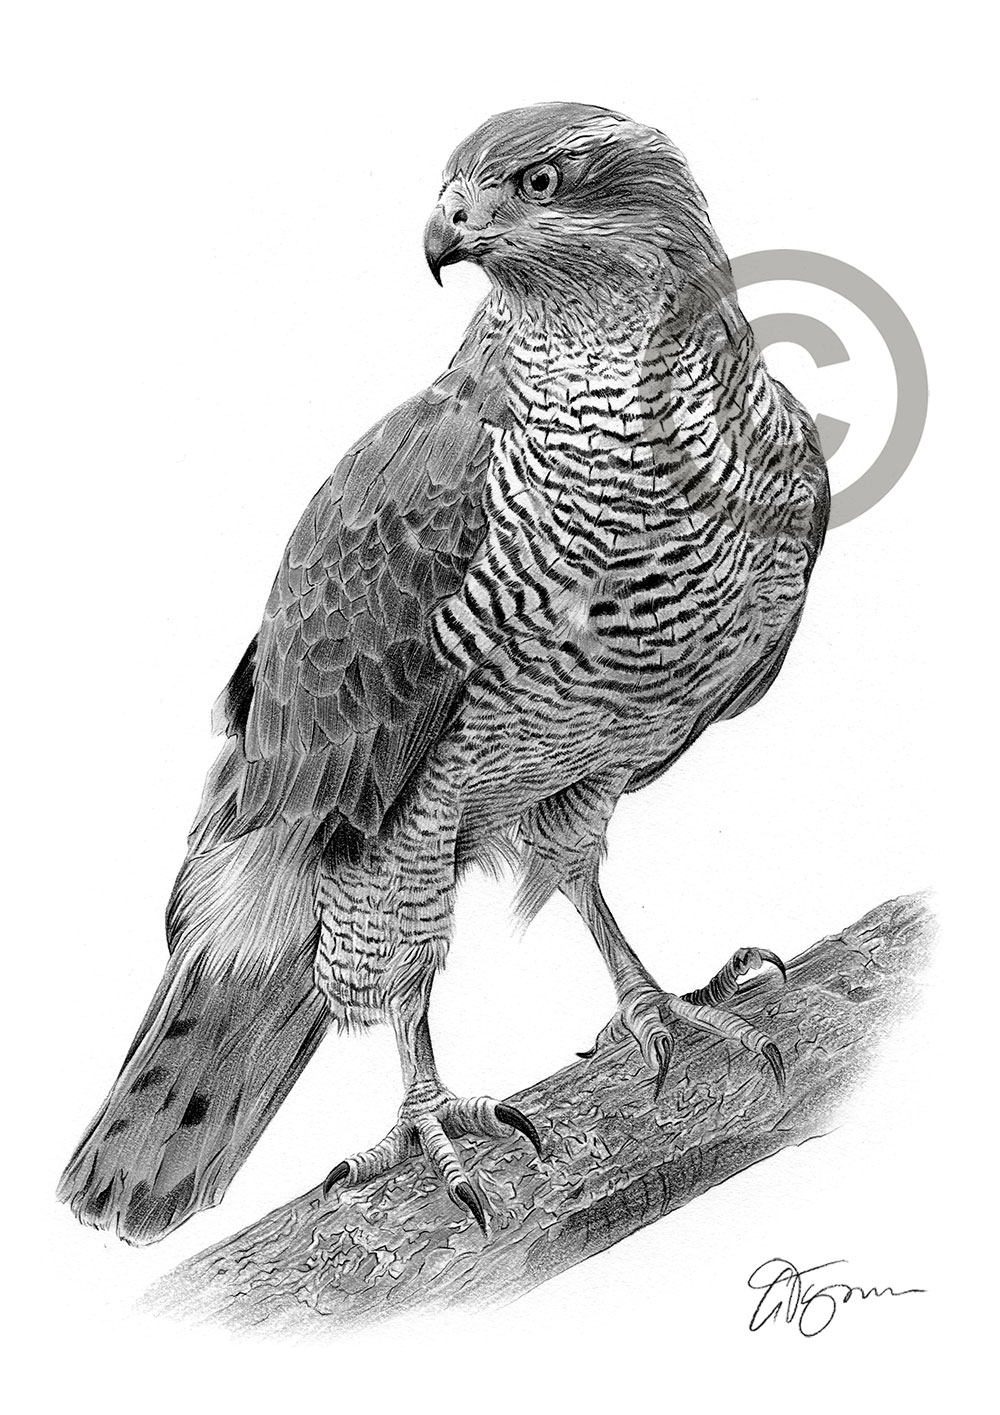 Goshawk pencil drawing by artist Gary Tymon